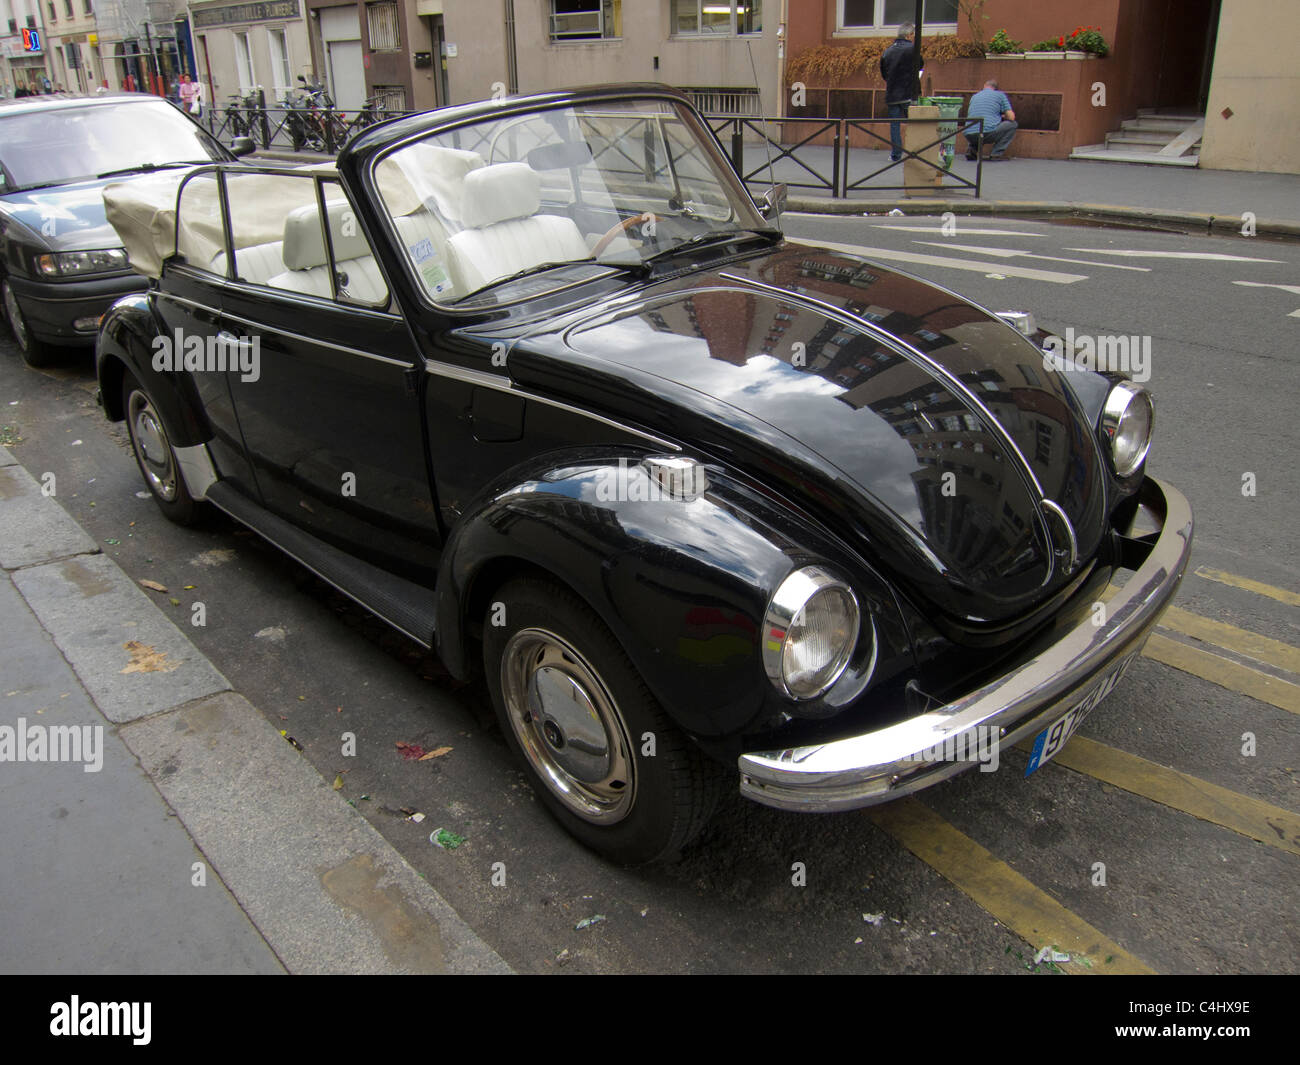 Paris, France, Volkswagen Beetle Car parked on Street - Stock Image